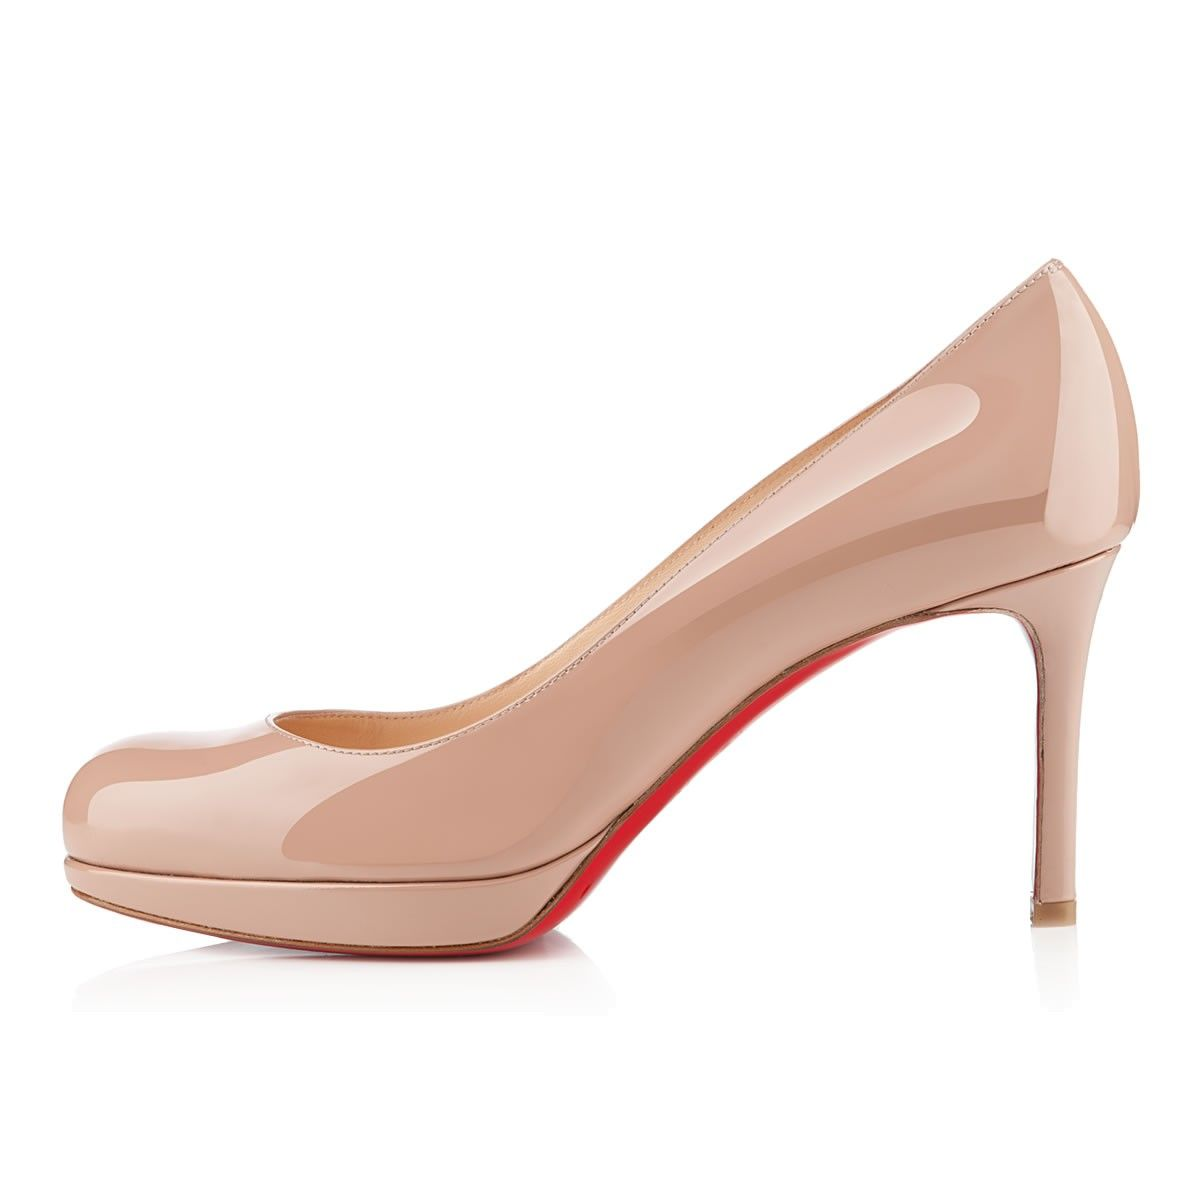 762bb5a84ecc New Simple Pump 85 NUDE Patent Leather - Women Shoes - Christian ...